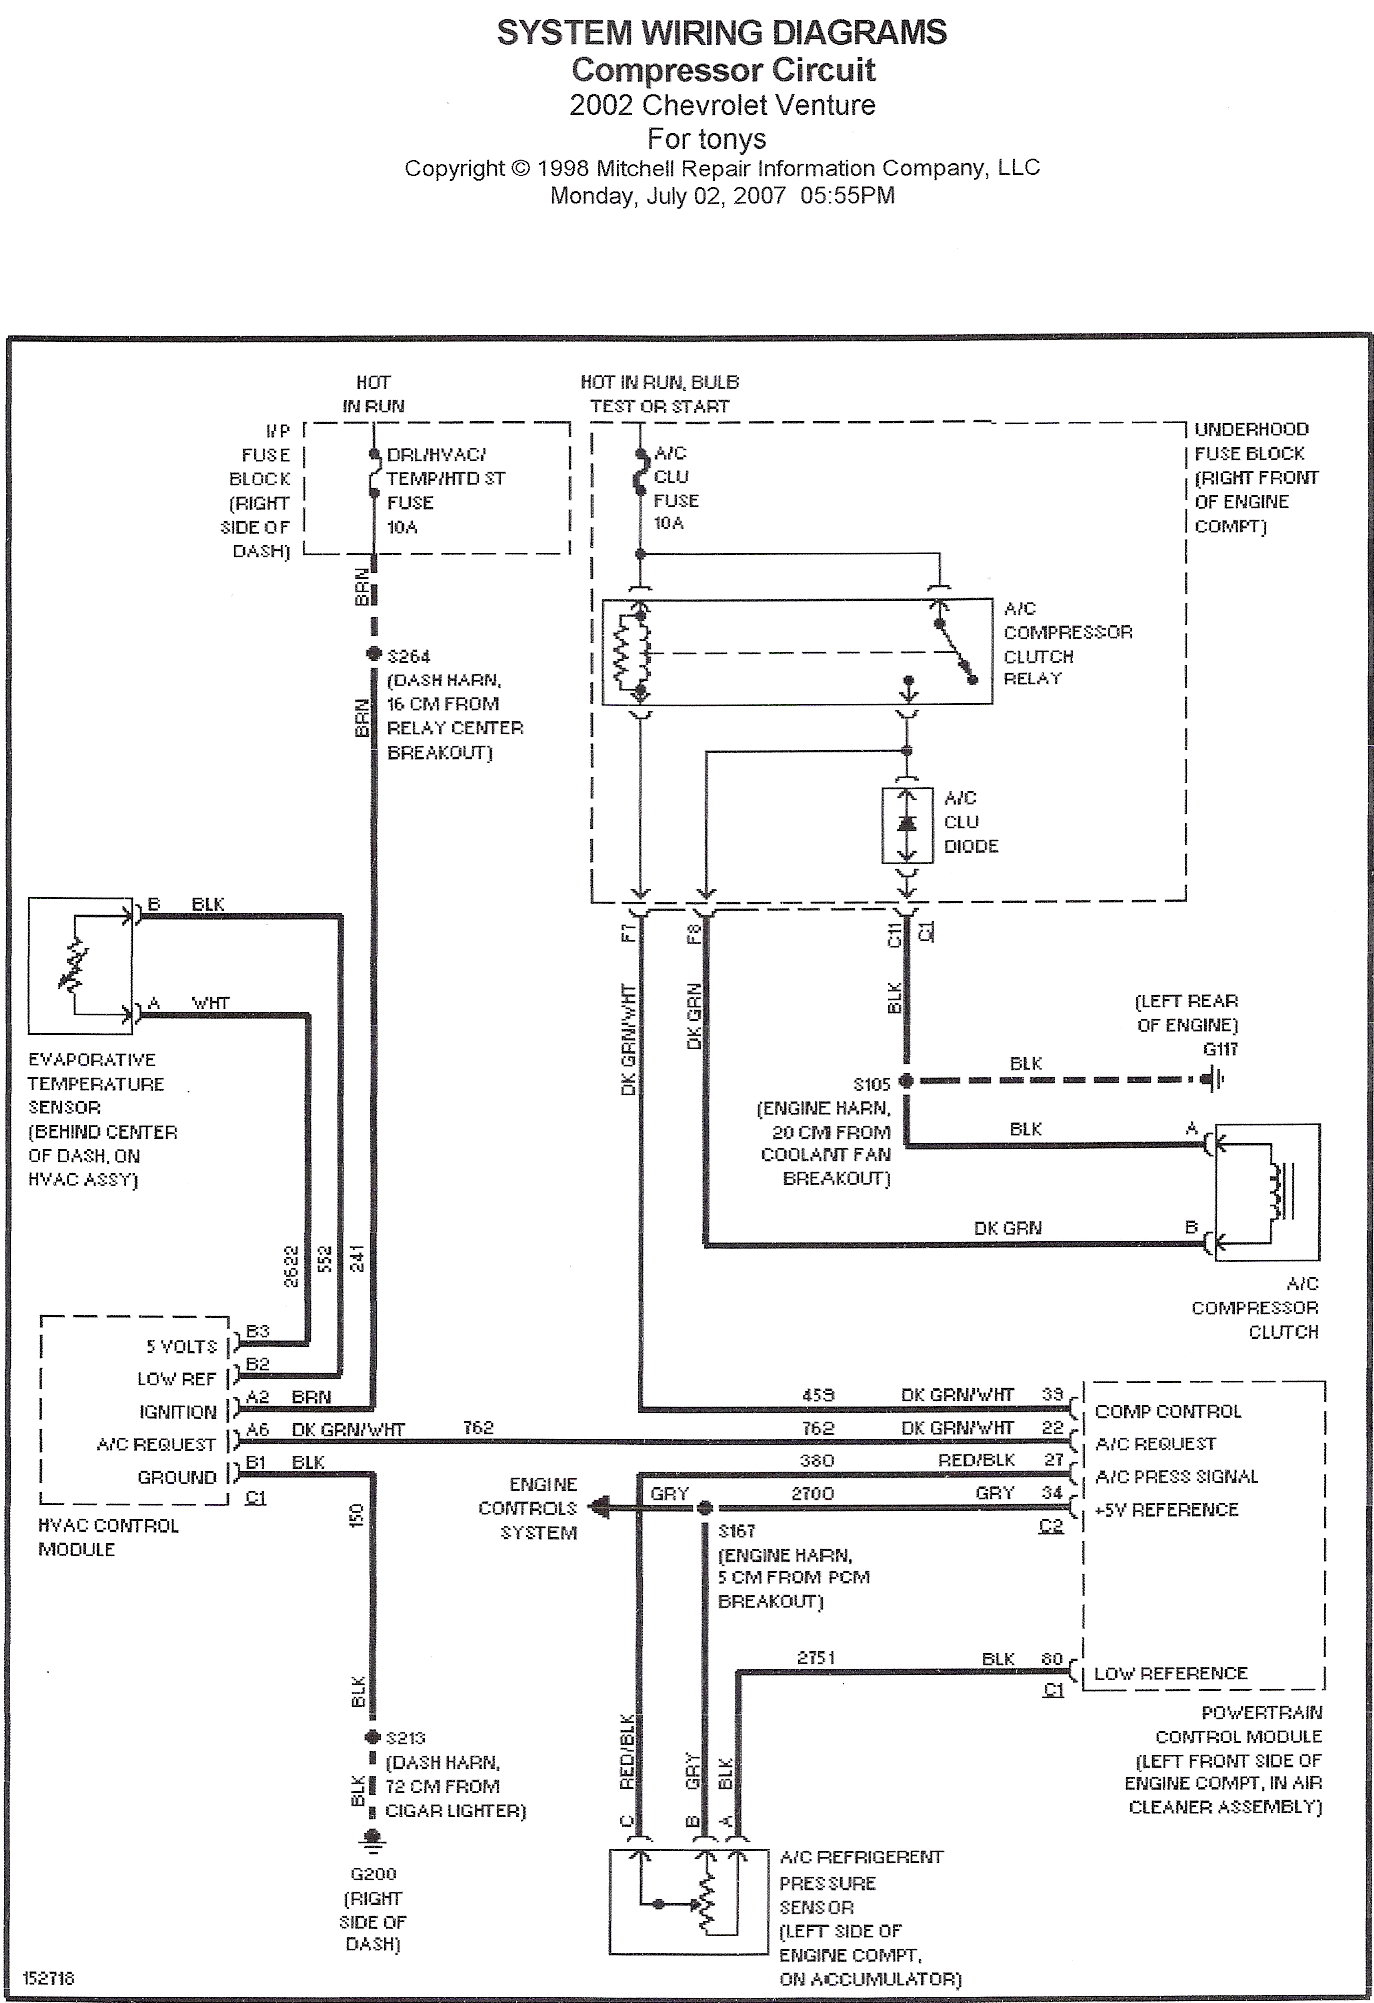 Heating Elements Wiring Switch Diagrams